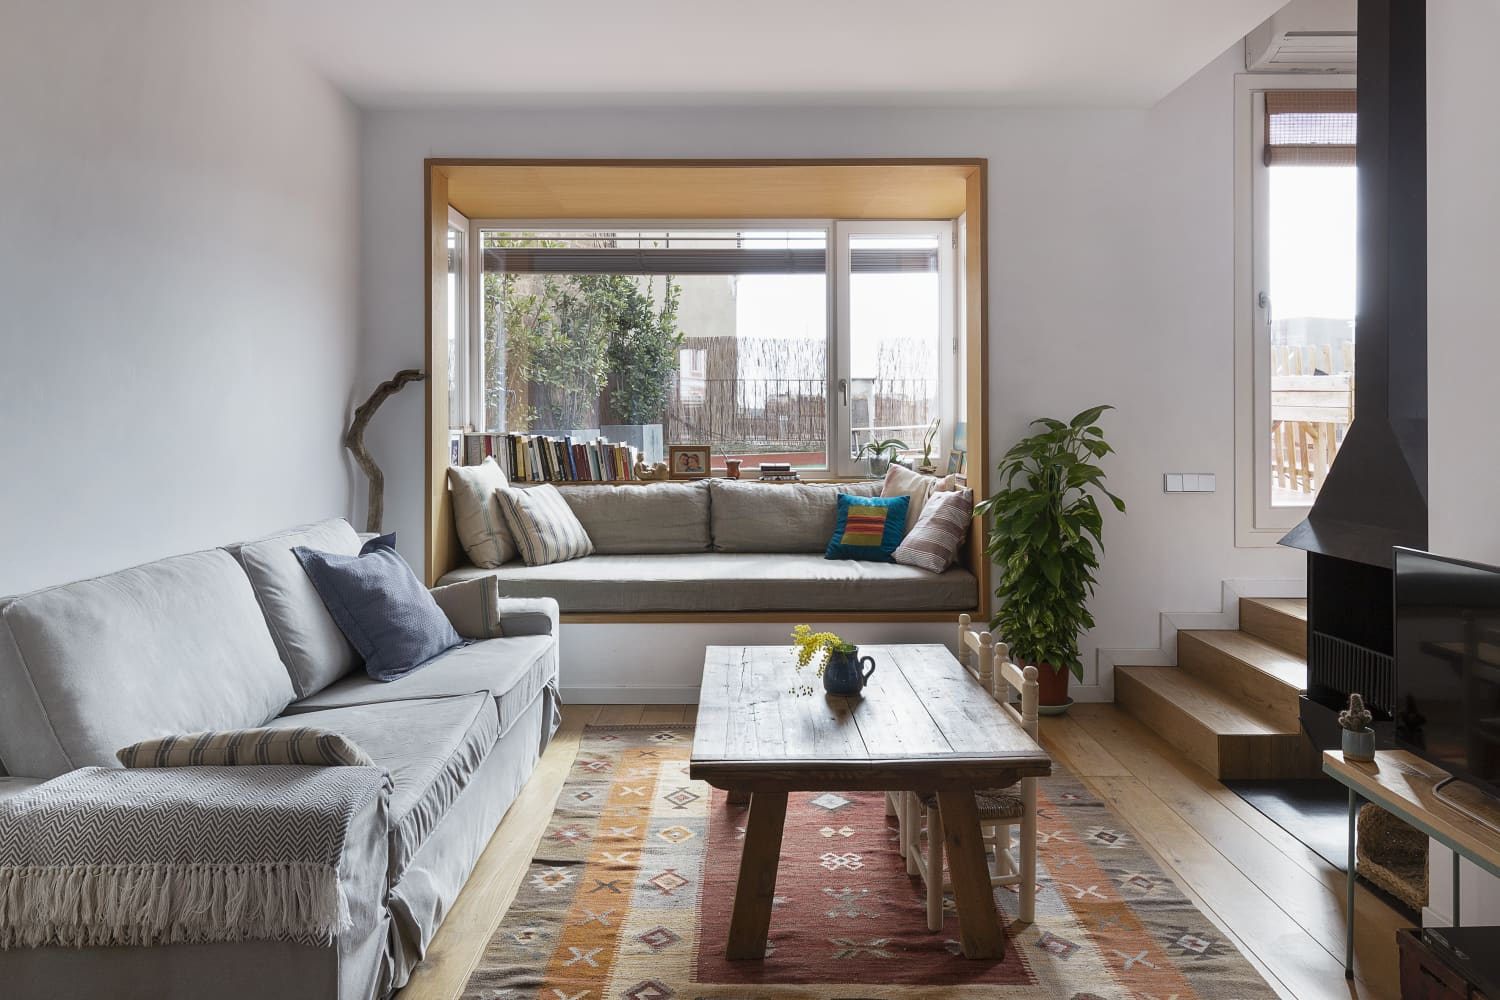 This Apartment's Colors, Views, and Style Are Utterly Charming